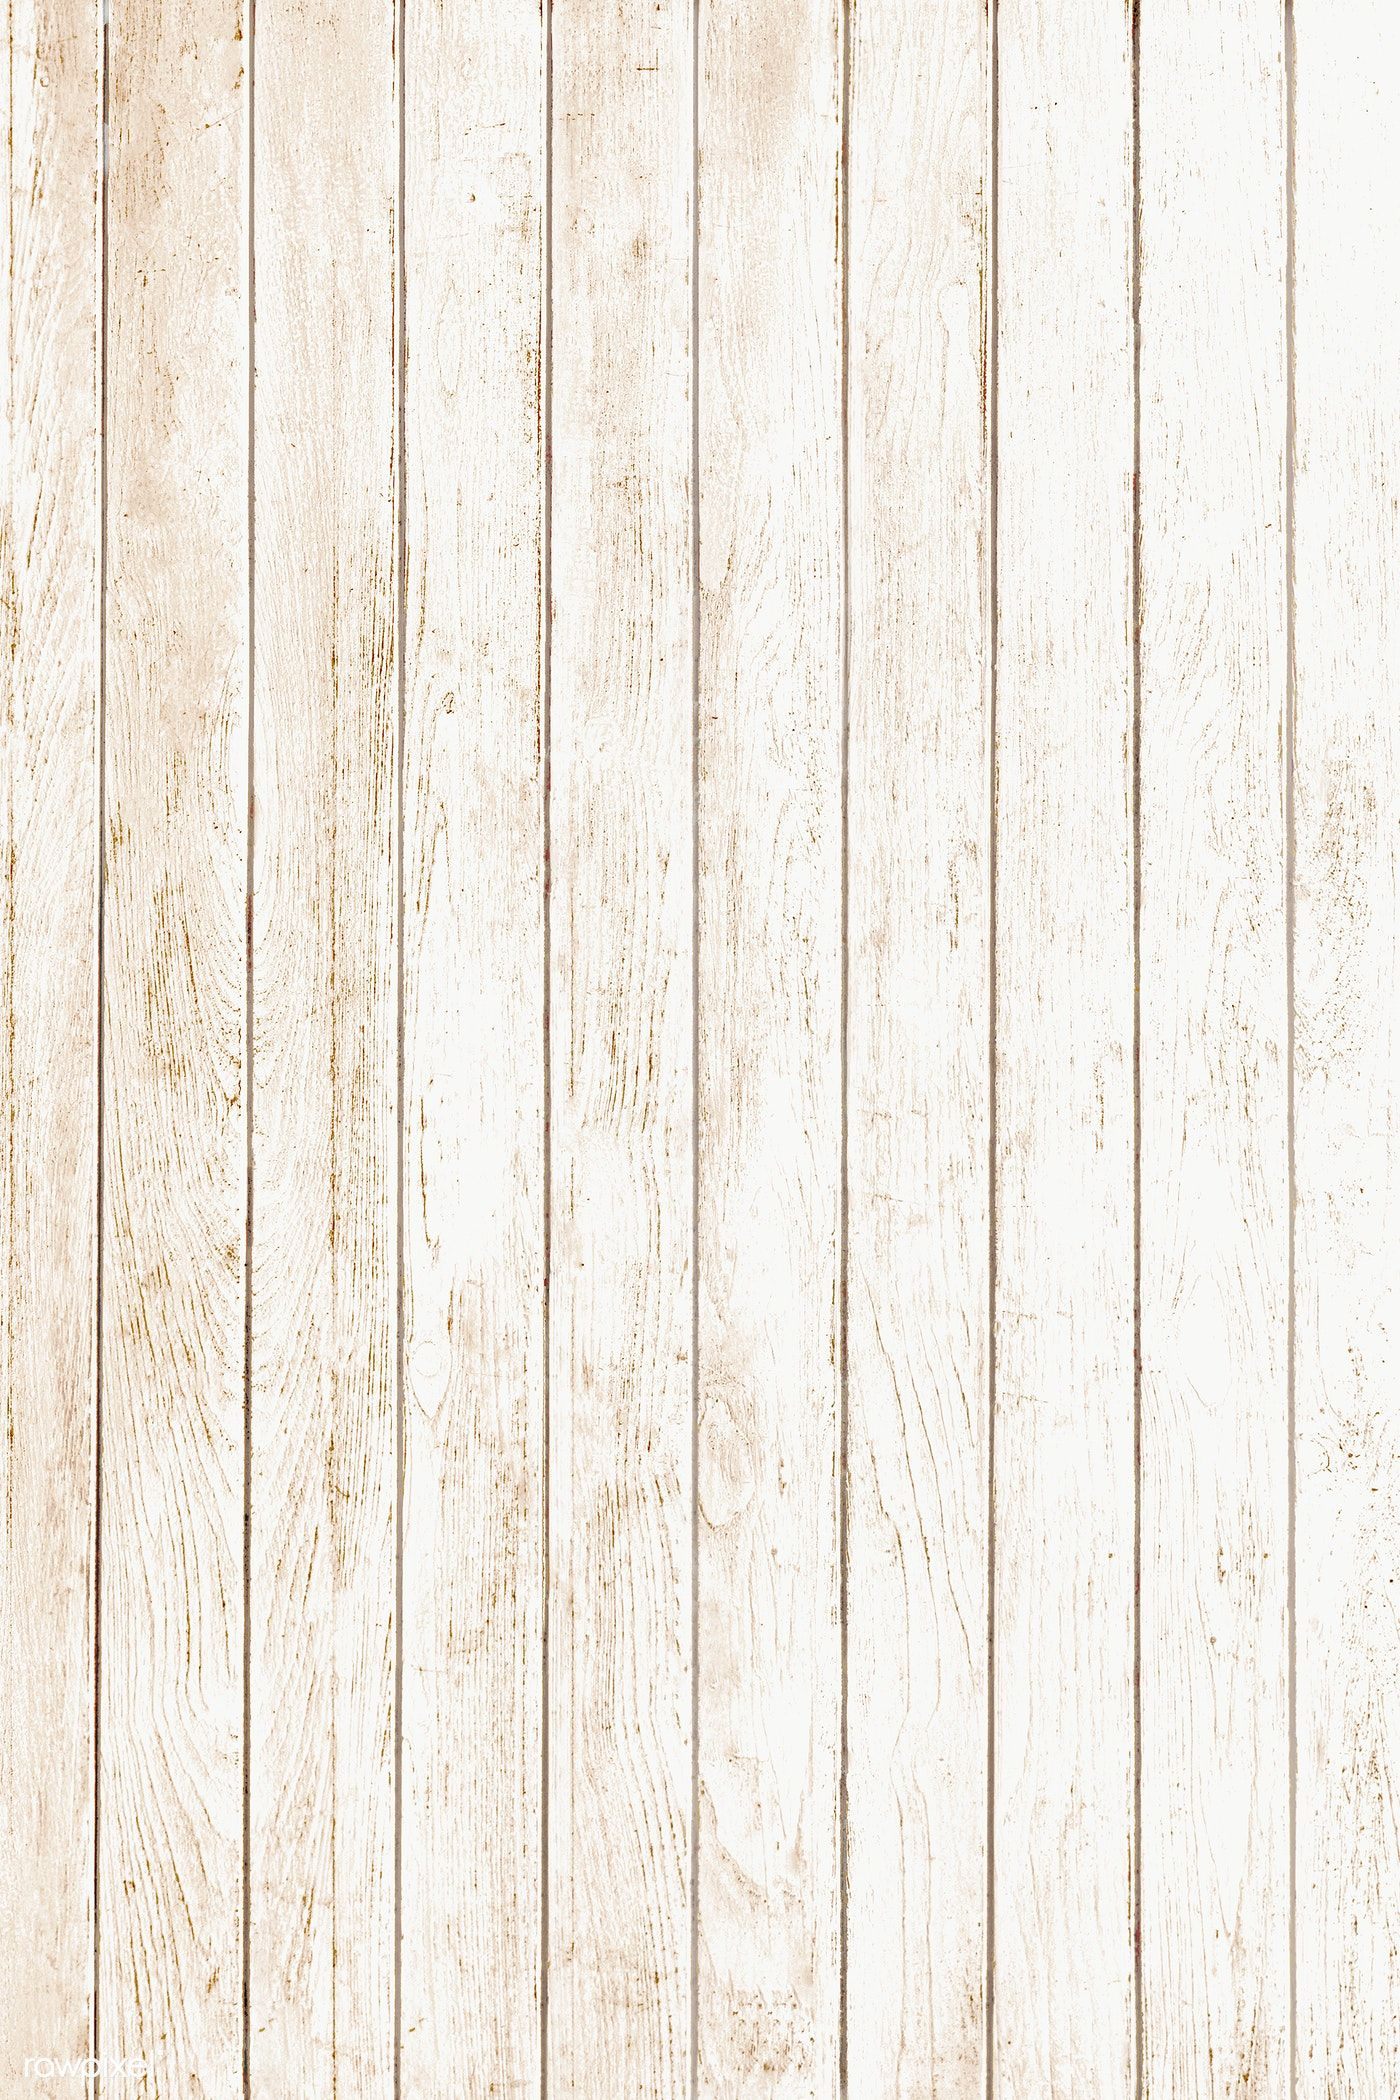 Plain Wooden Textured Design Background Transparent Png Free Image By Rawpixel Com White Background Wallpaper Textured Background Background For Photography